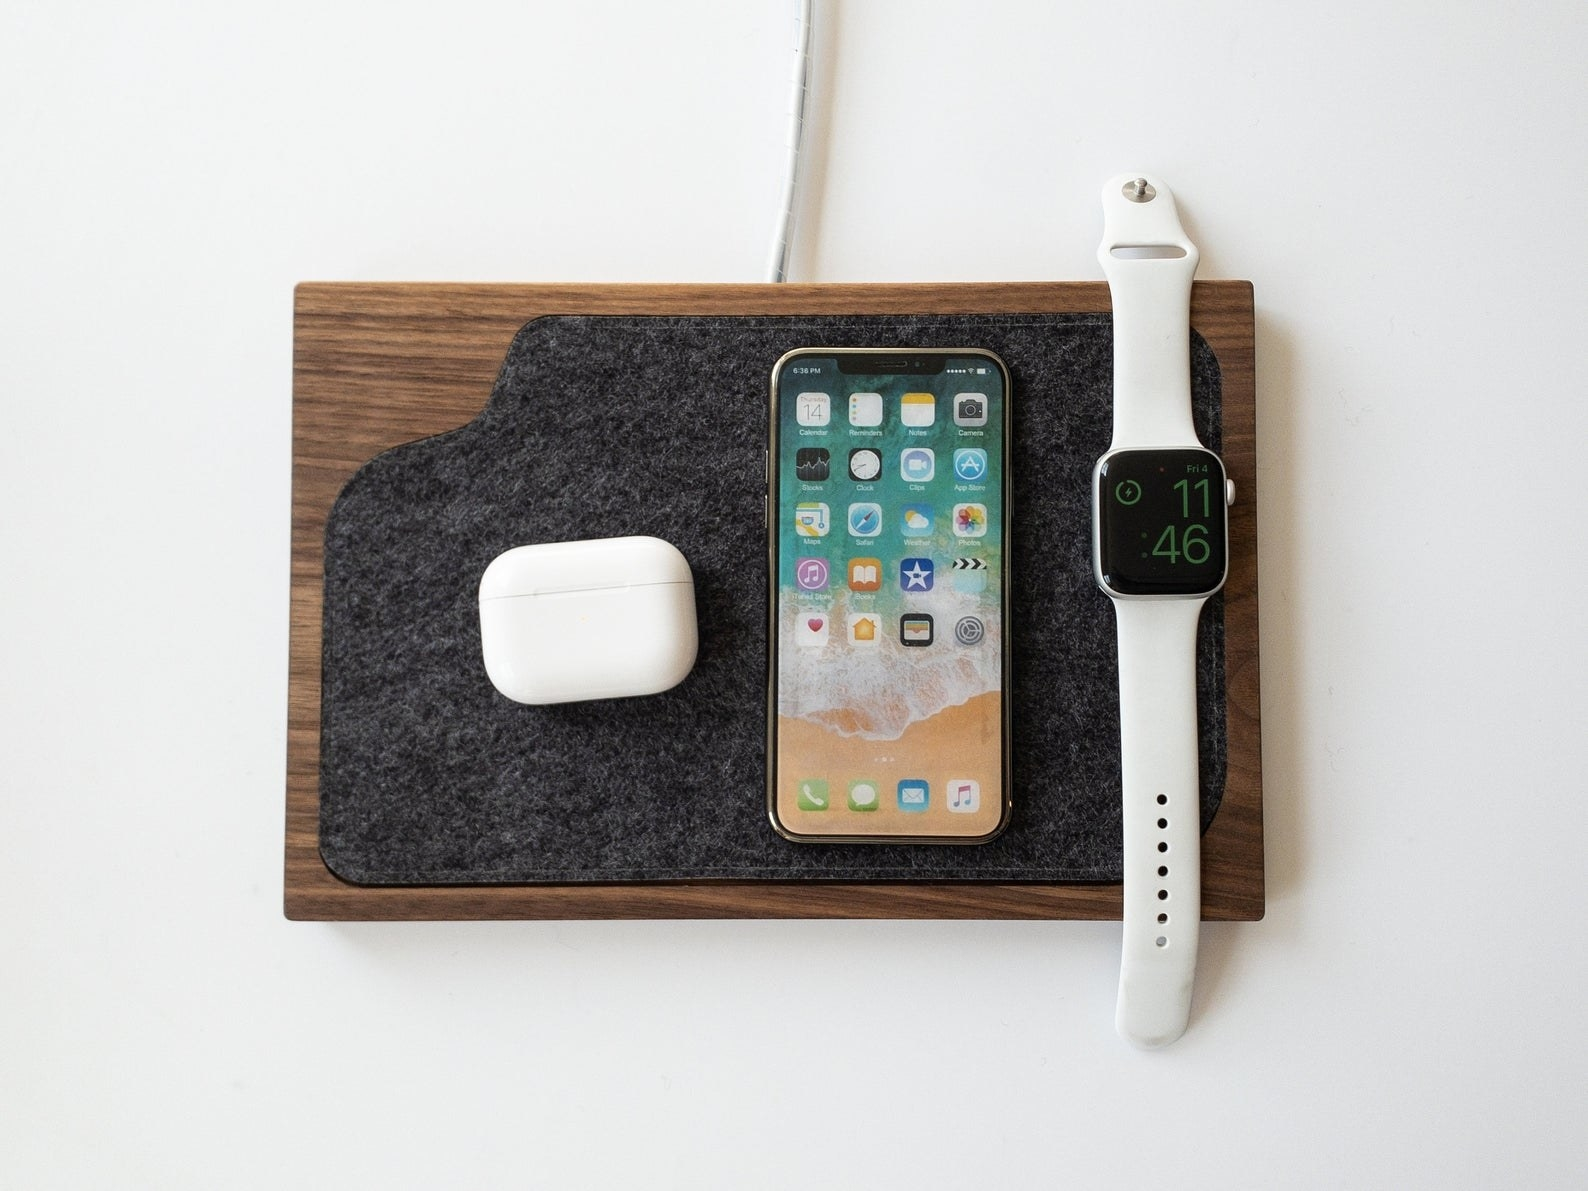 the wireless charging tray with a smart phone, watch, and airpods on it